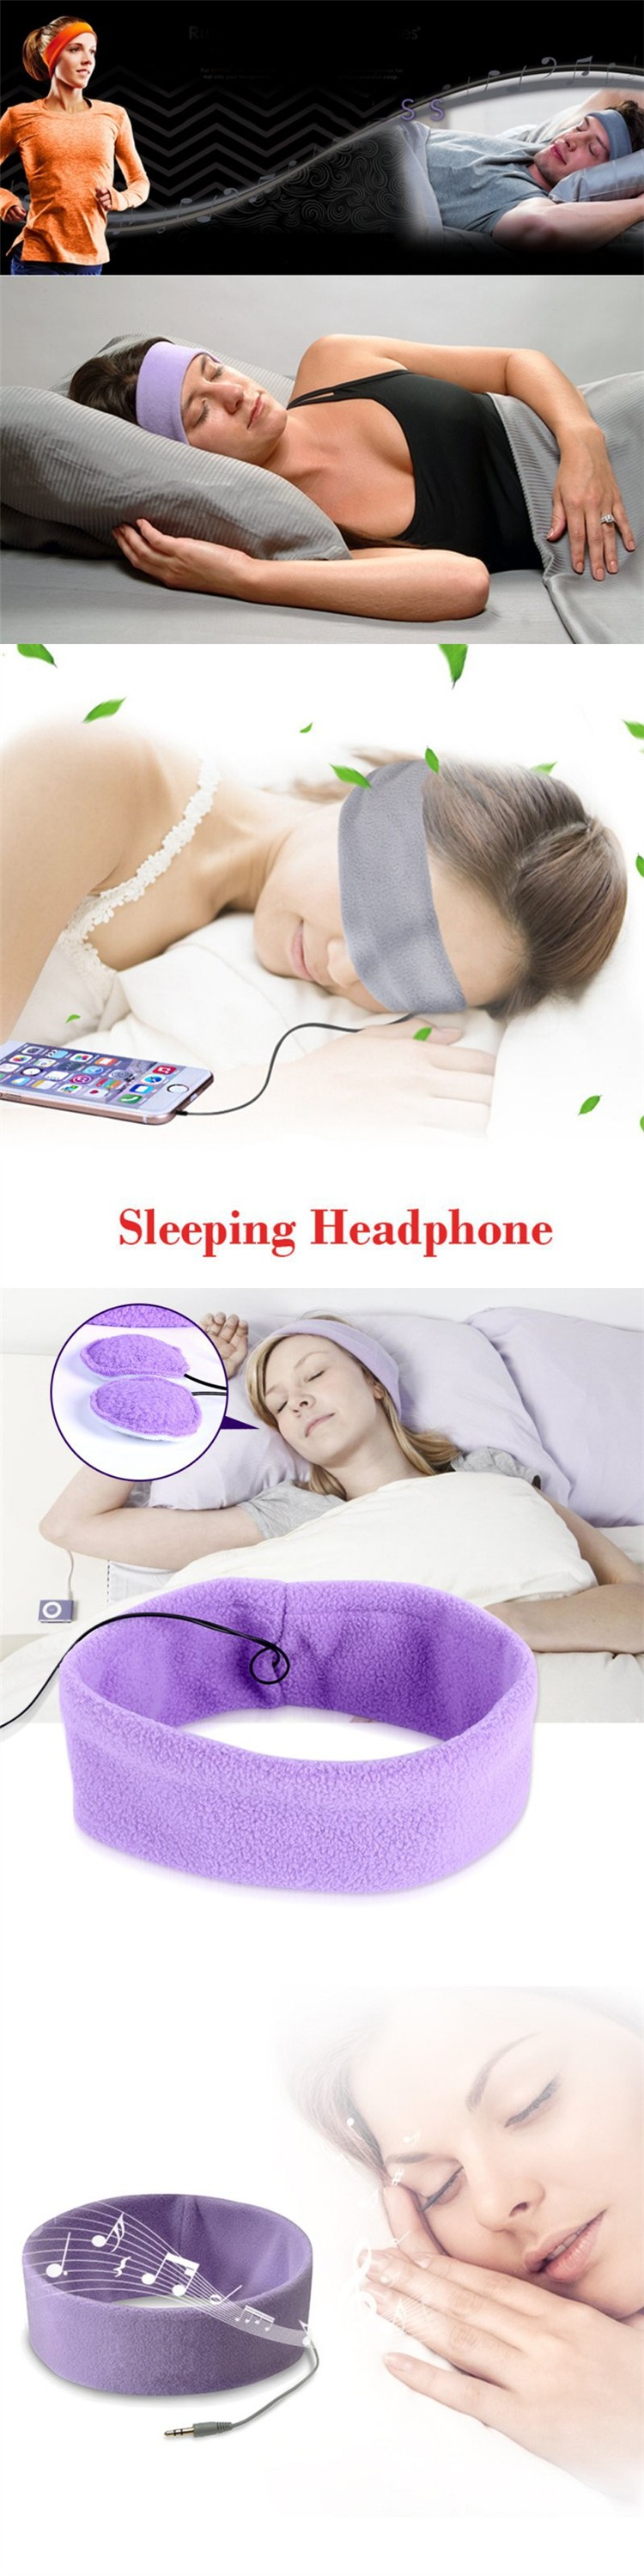 Soft Headphones For Sleeping